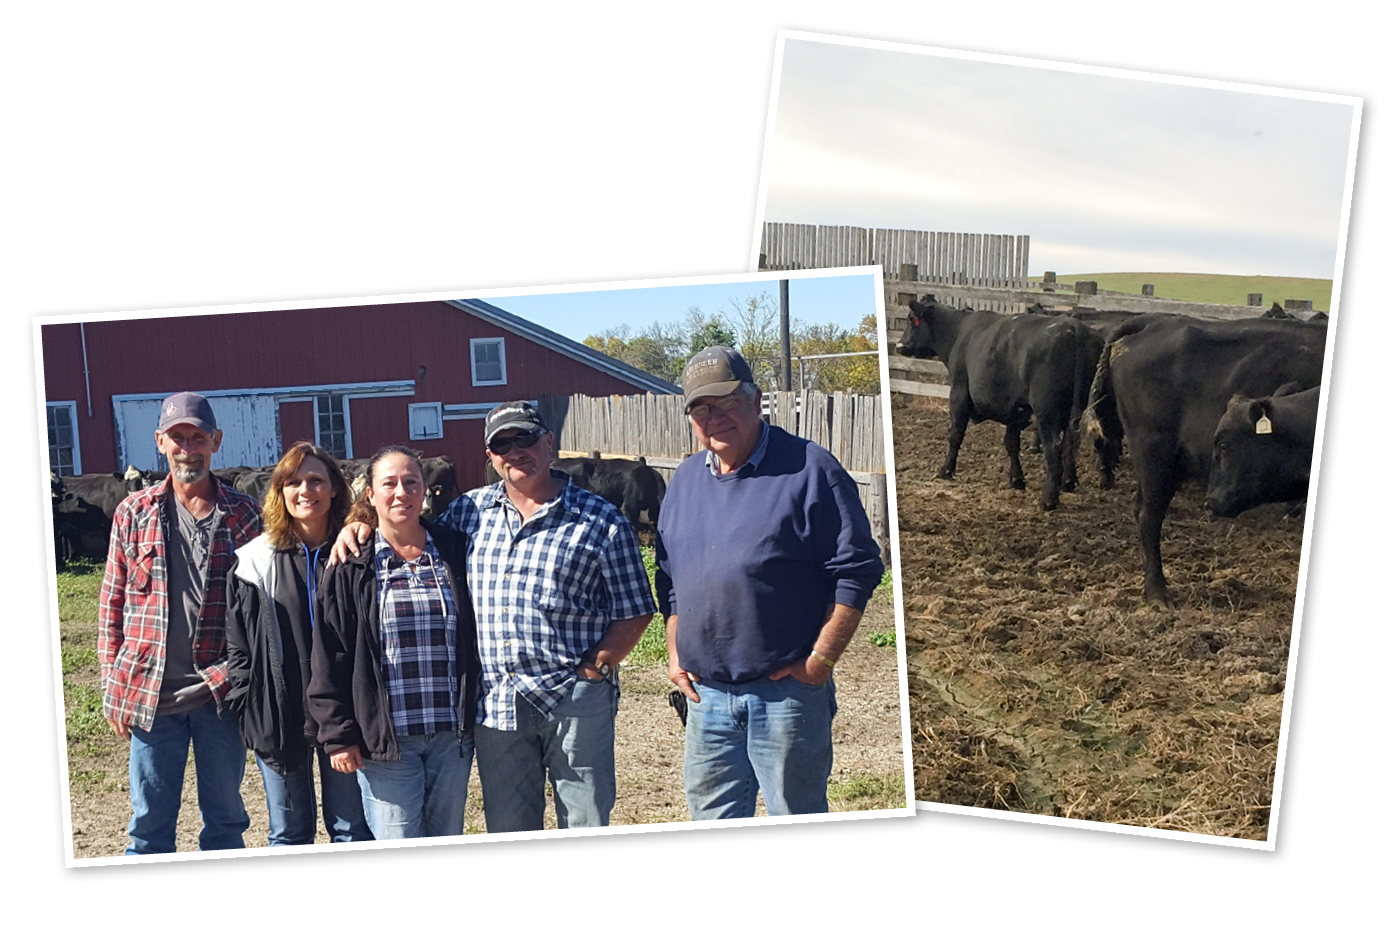 Mark and Janet Dassinger and neighbors Shari and Lee Stein stand with Jim Henningsen with his barn in the background